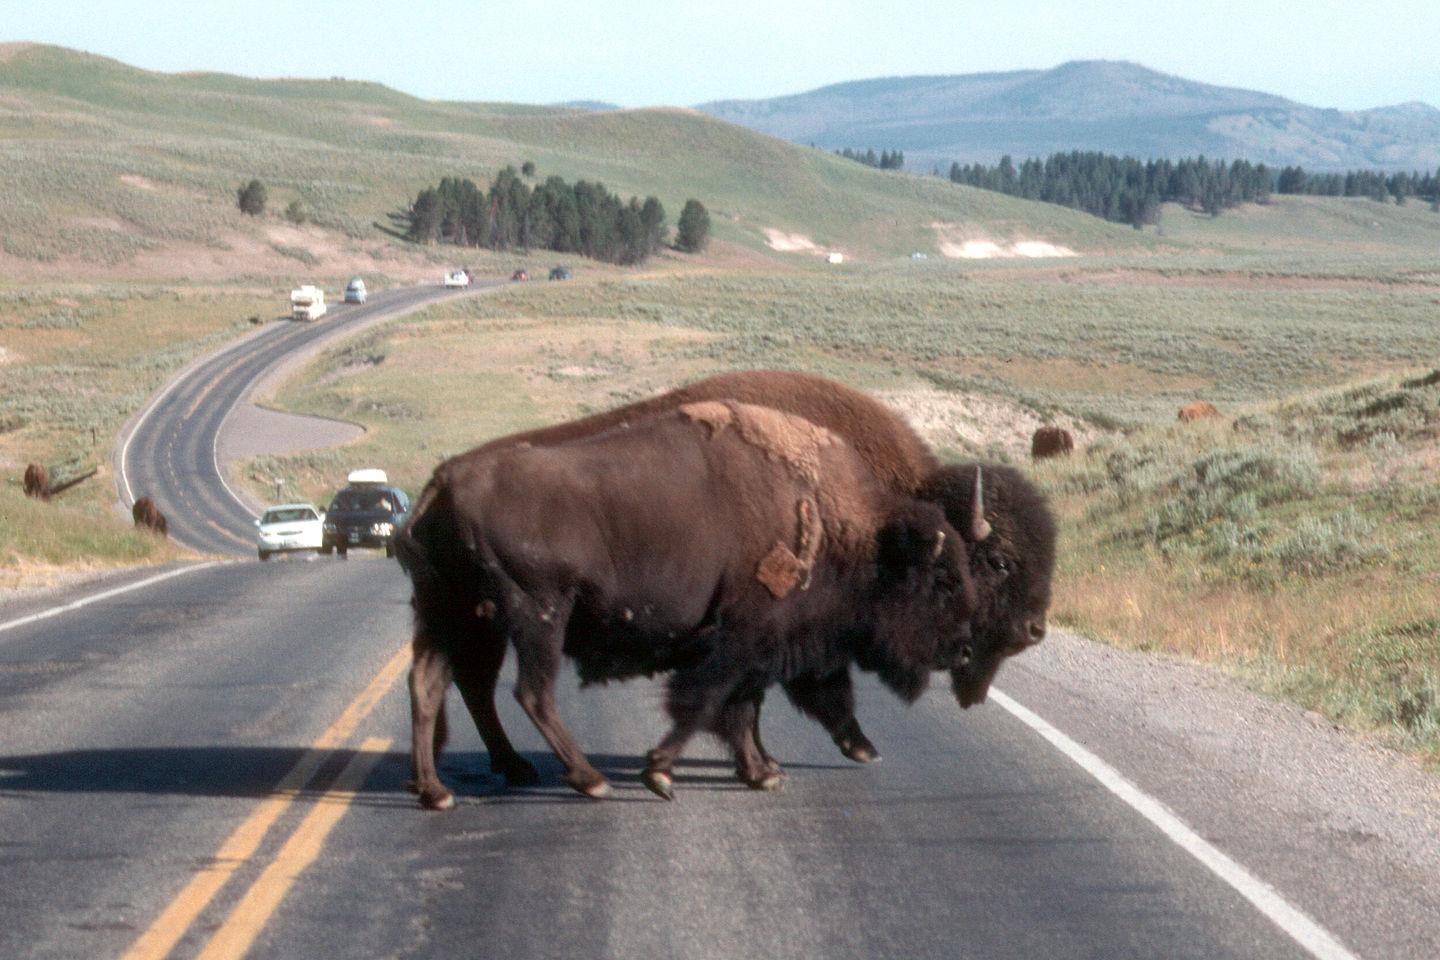 Why does the Bison cross the road?